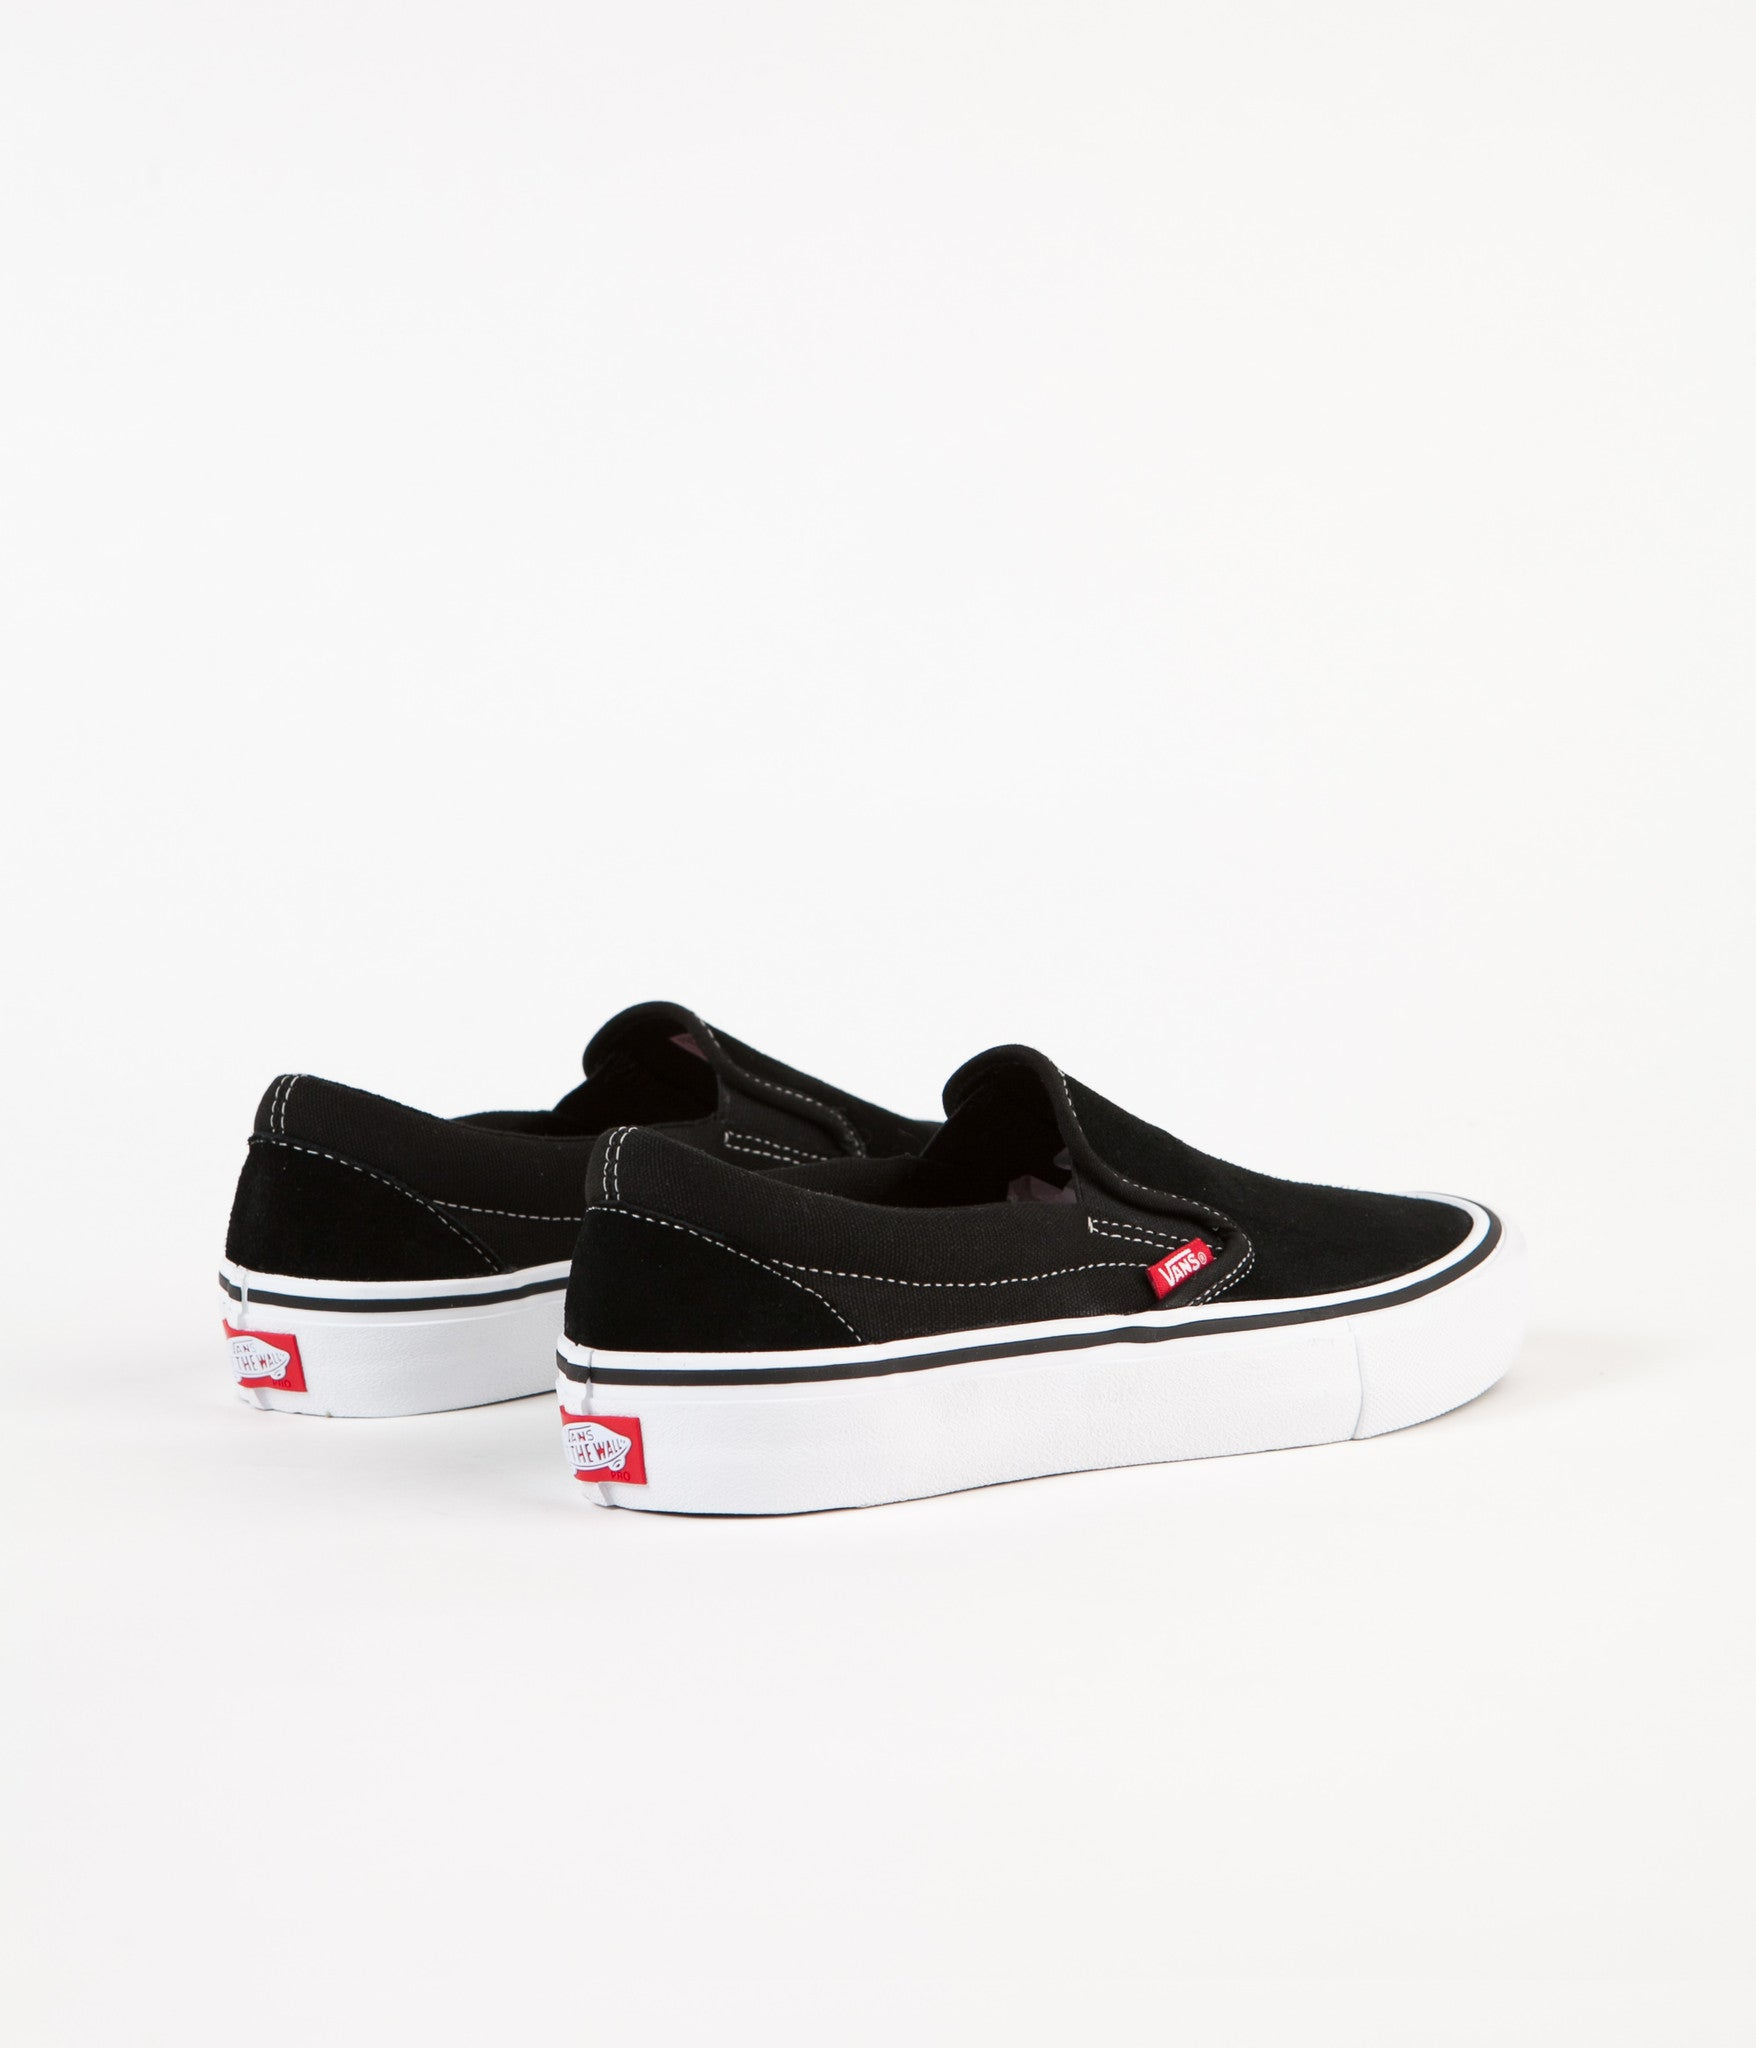 3cac5e0dbaa1 ... Vans Slip On Pro Shoes - Black   White   Gum ...